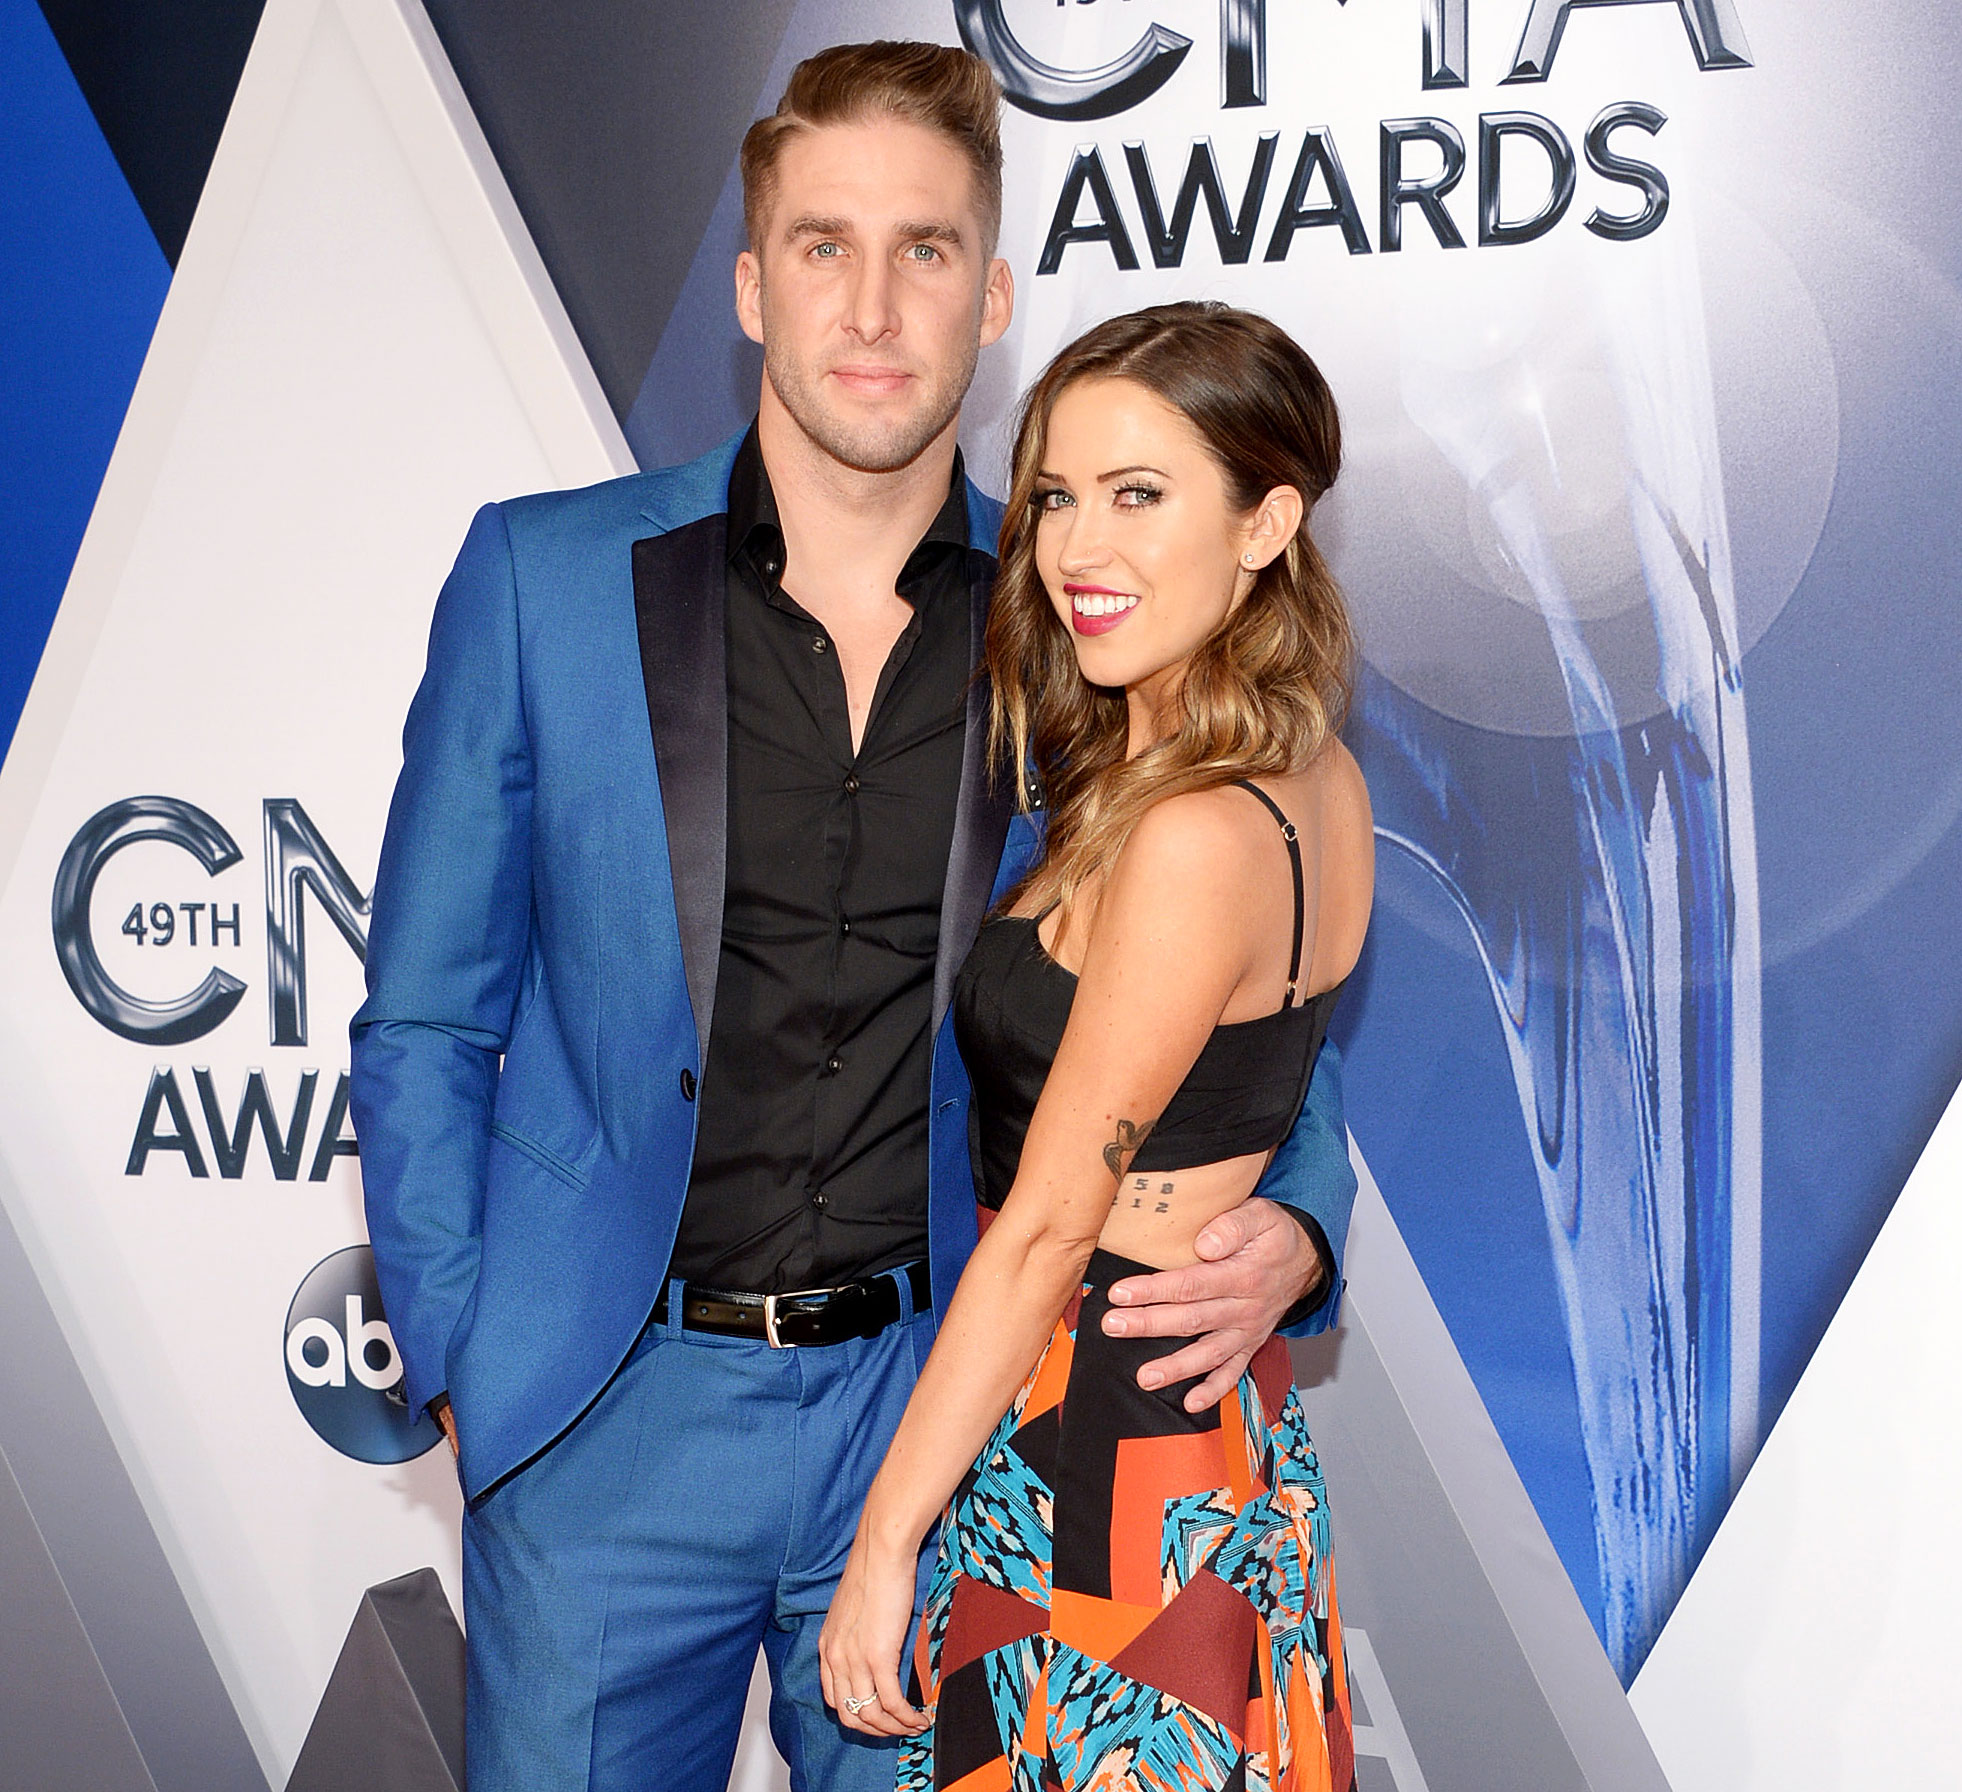 Bachelorette's Kaitlyn Bristowe Reflects on Shawn Booth Relationship and Would Have Done Anything to Make It Work